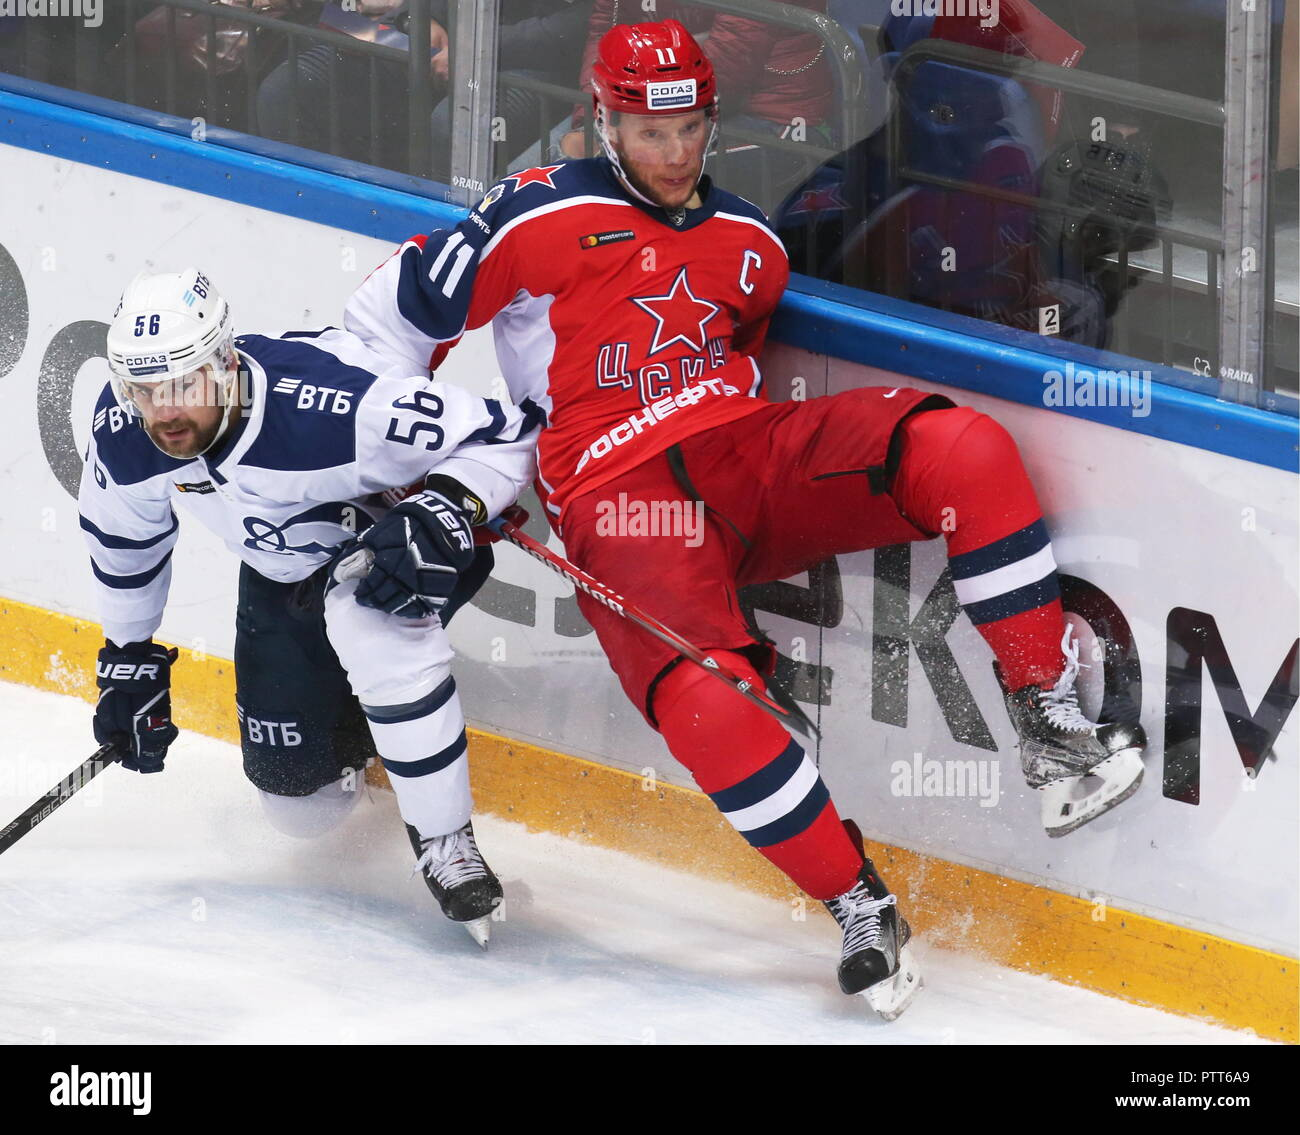 KHL in 2018-2019 year: teams, schedule, start of the season 71